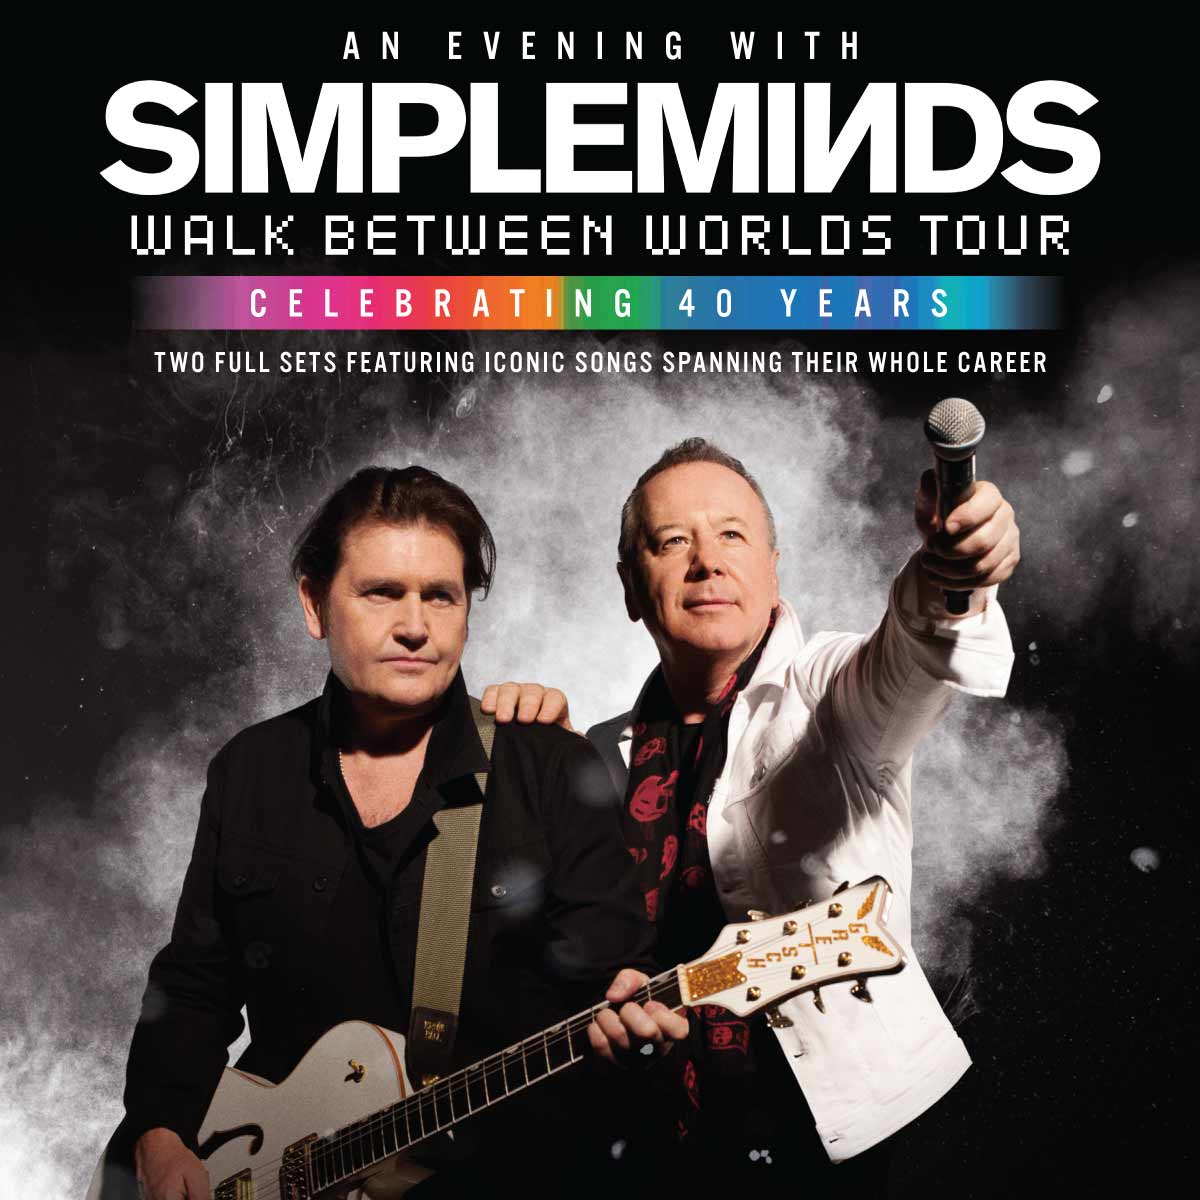 North American Tour Announced 2018 ! - SIMPLEMINDS.COM